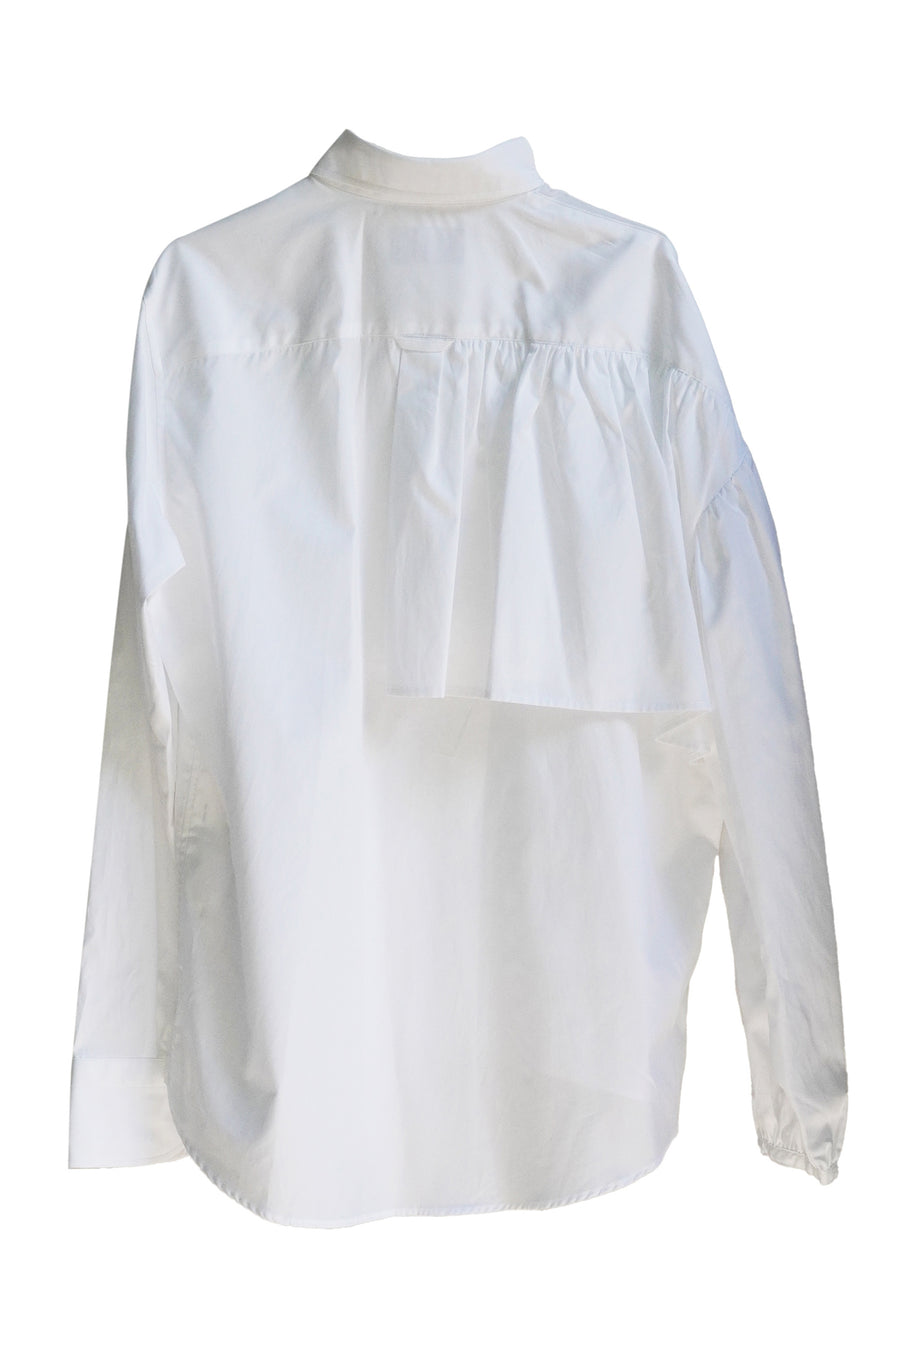 Ruffle Blouse in White